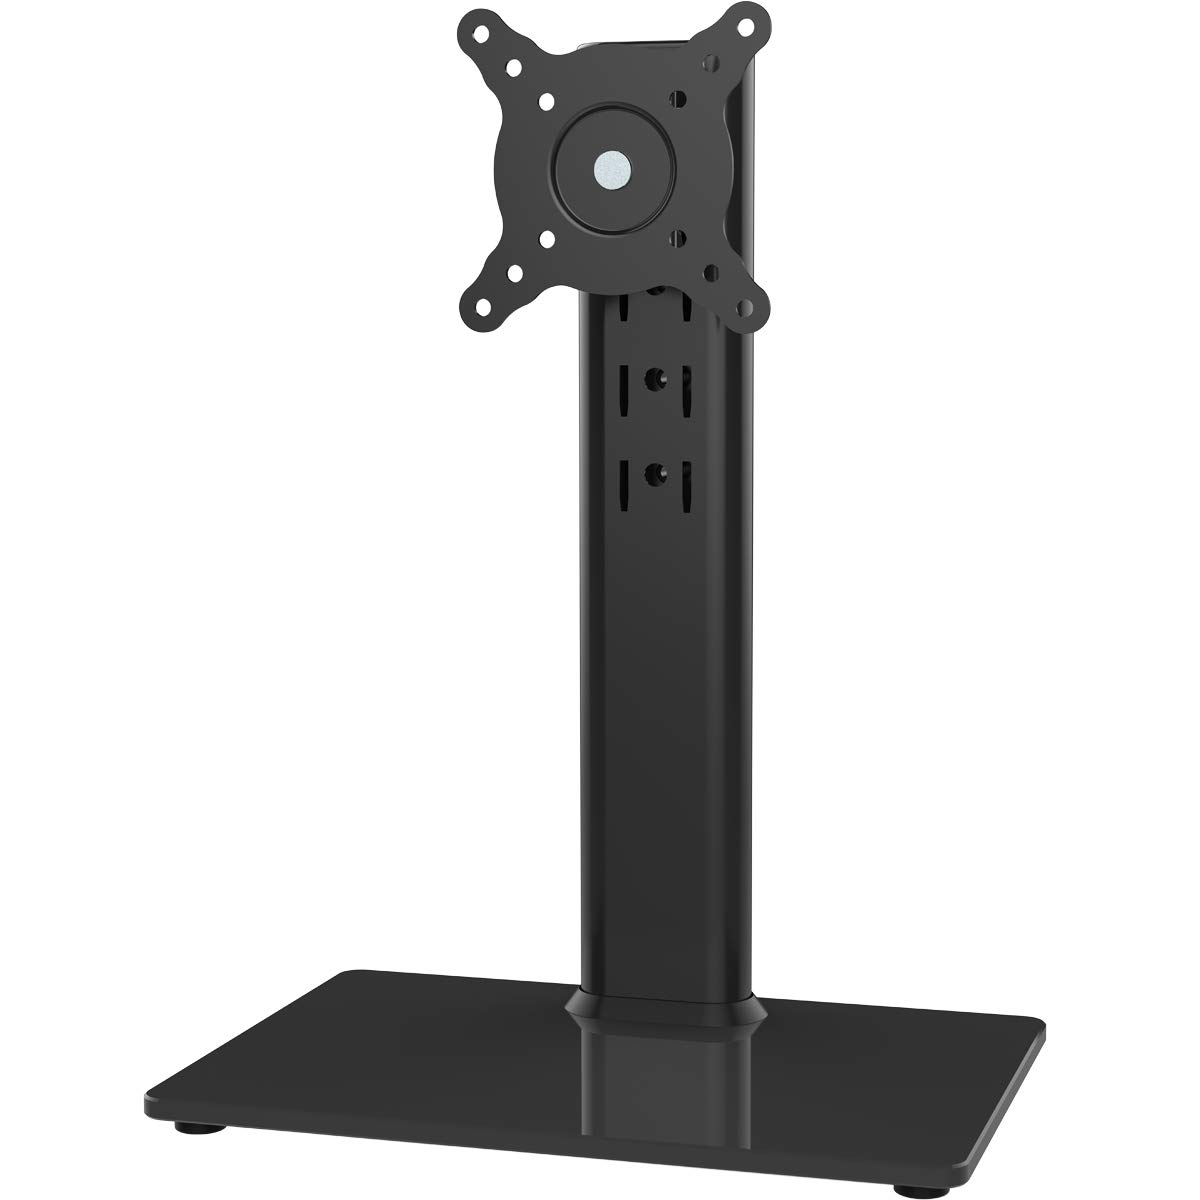 Single LCD Computer Monitor Free-Standing Desk Stand Riser for 13 inch to 32 inch Screen with Swivel, Height Adjustable, Rotation, Holds One (1) Screen up to 77Lbs(HT05B-001))